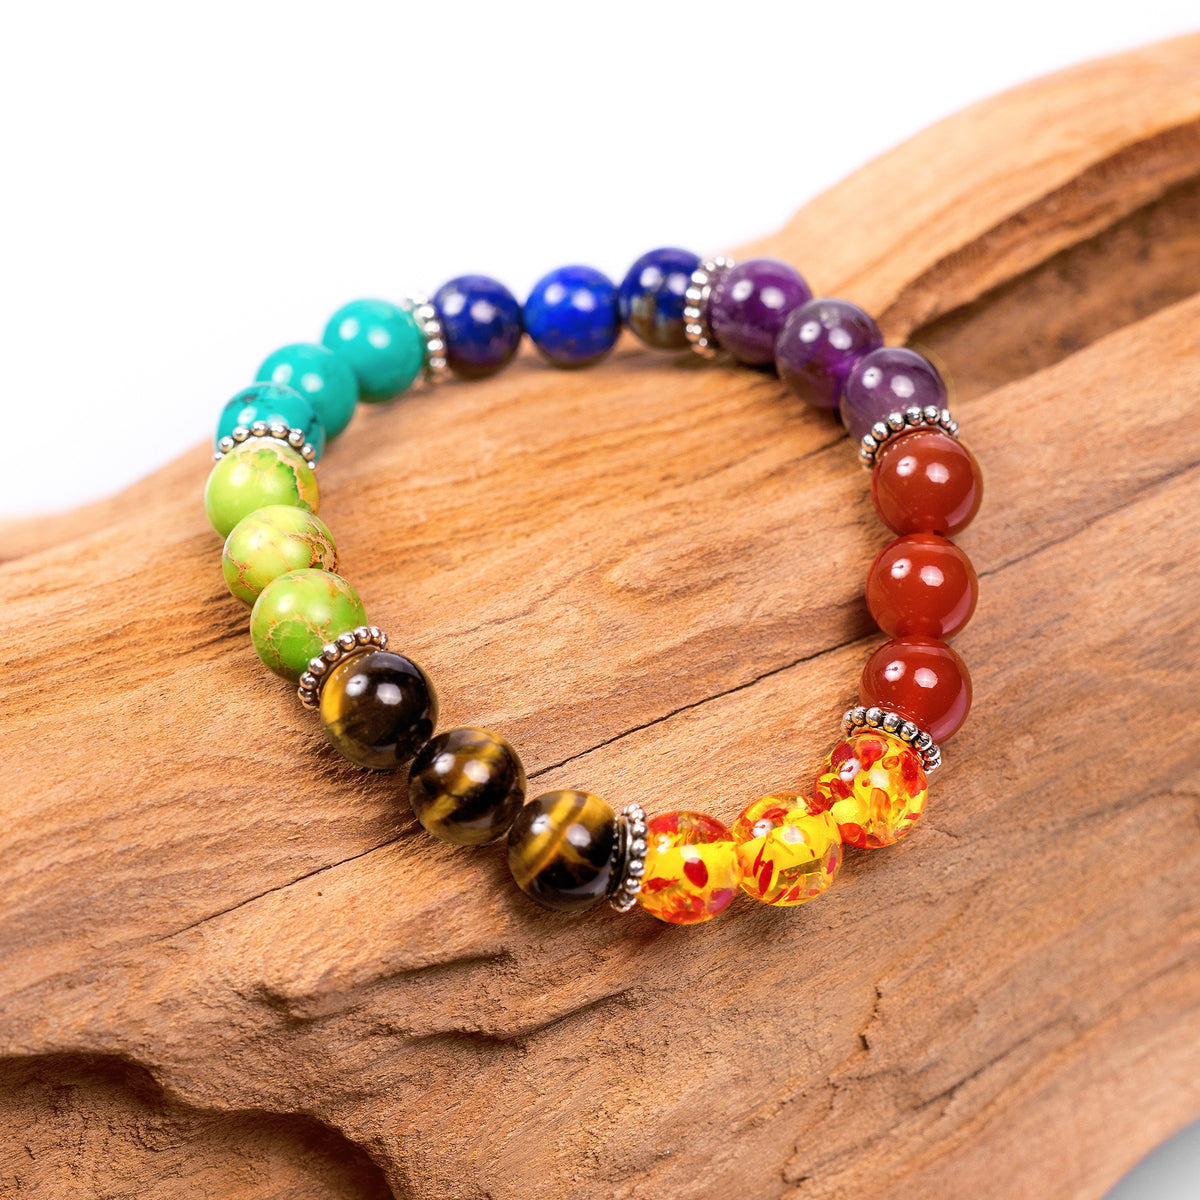 7 Chakra Healing Bracelet with Authentic Stones - 7 in